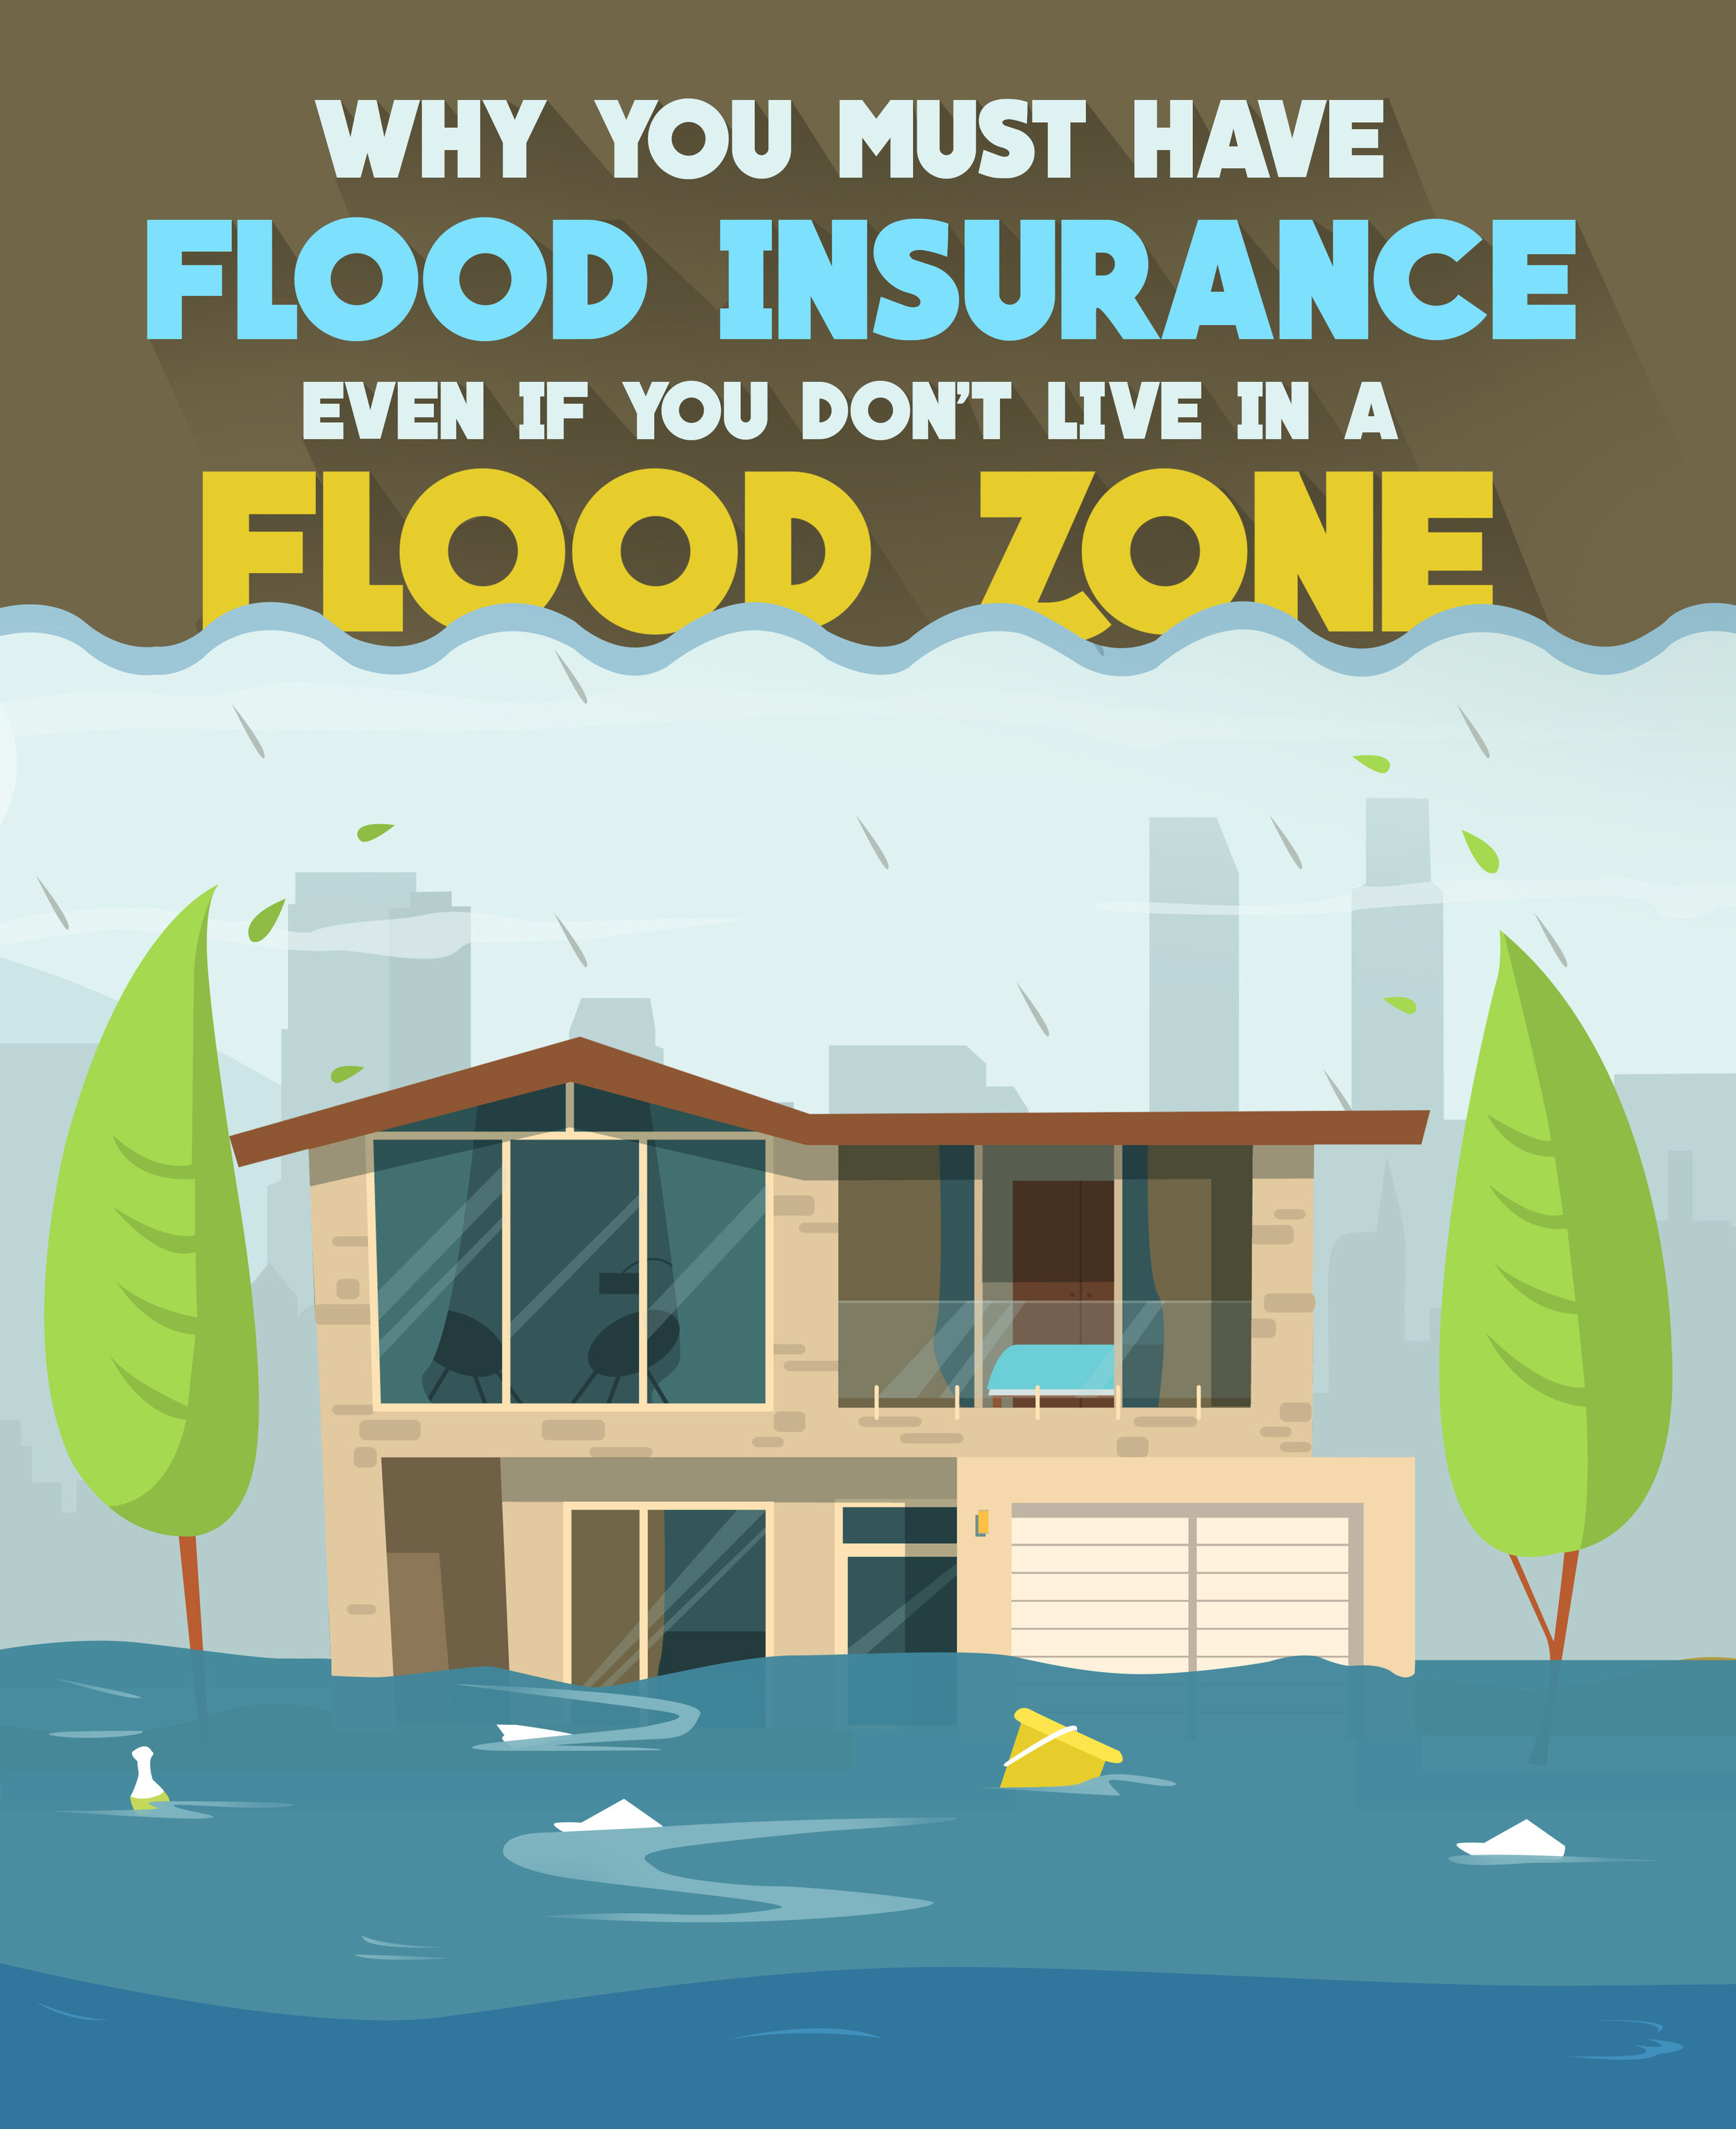 Why You Must Have Flood Insurance Even If You Don't Live In A Flood Zone.jpg